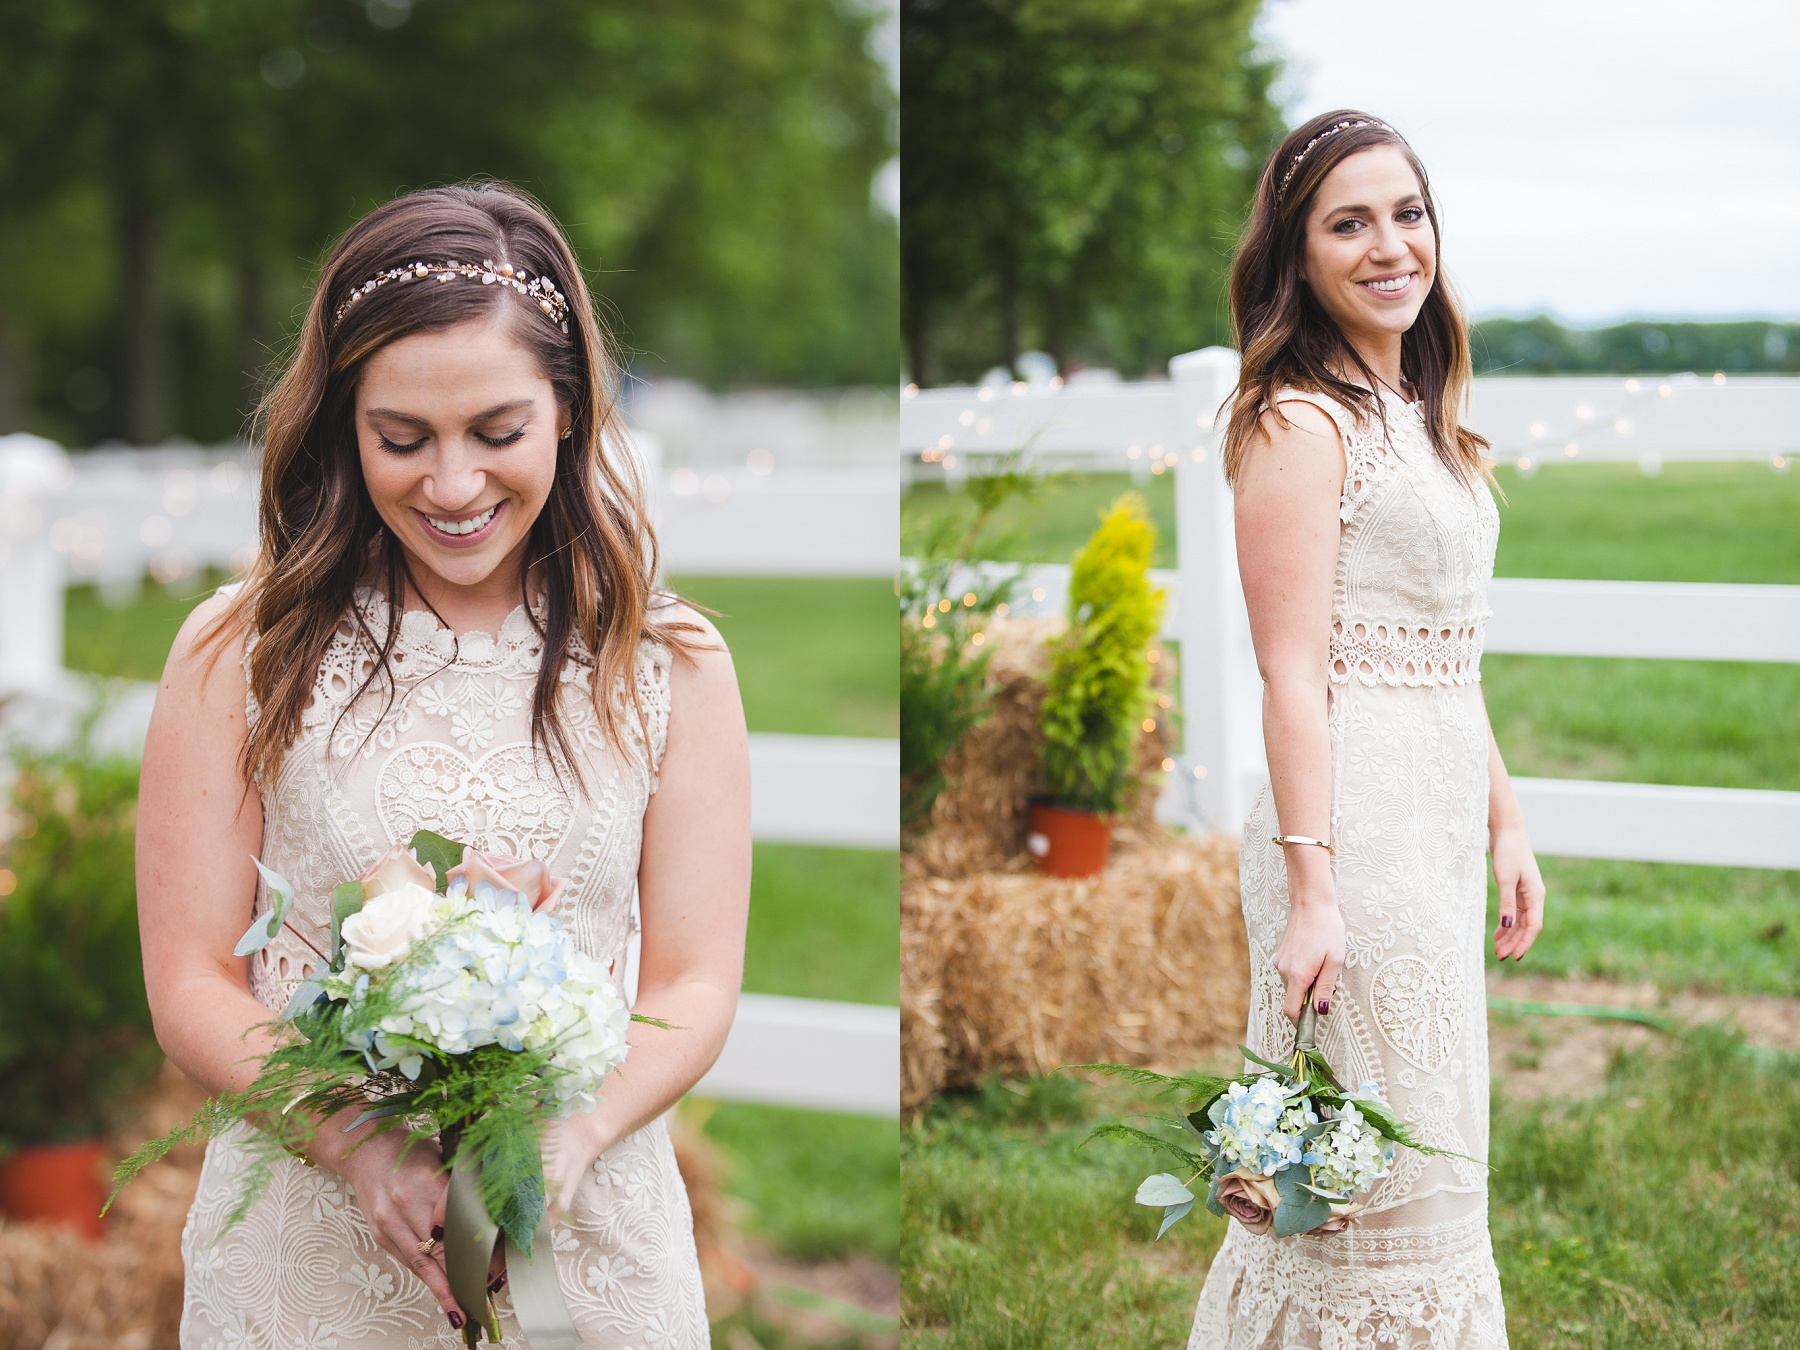 Family Farm Wedding in South Jersey Photography - BHLDN Bride